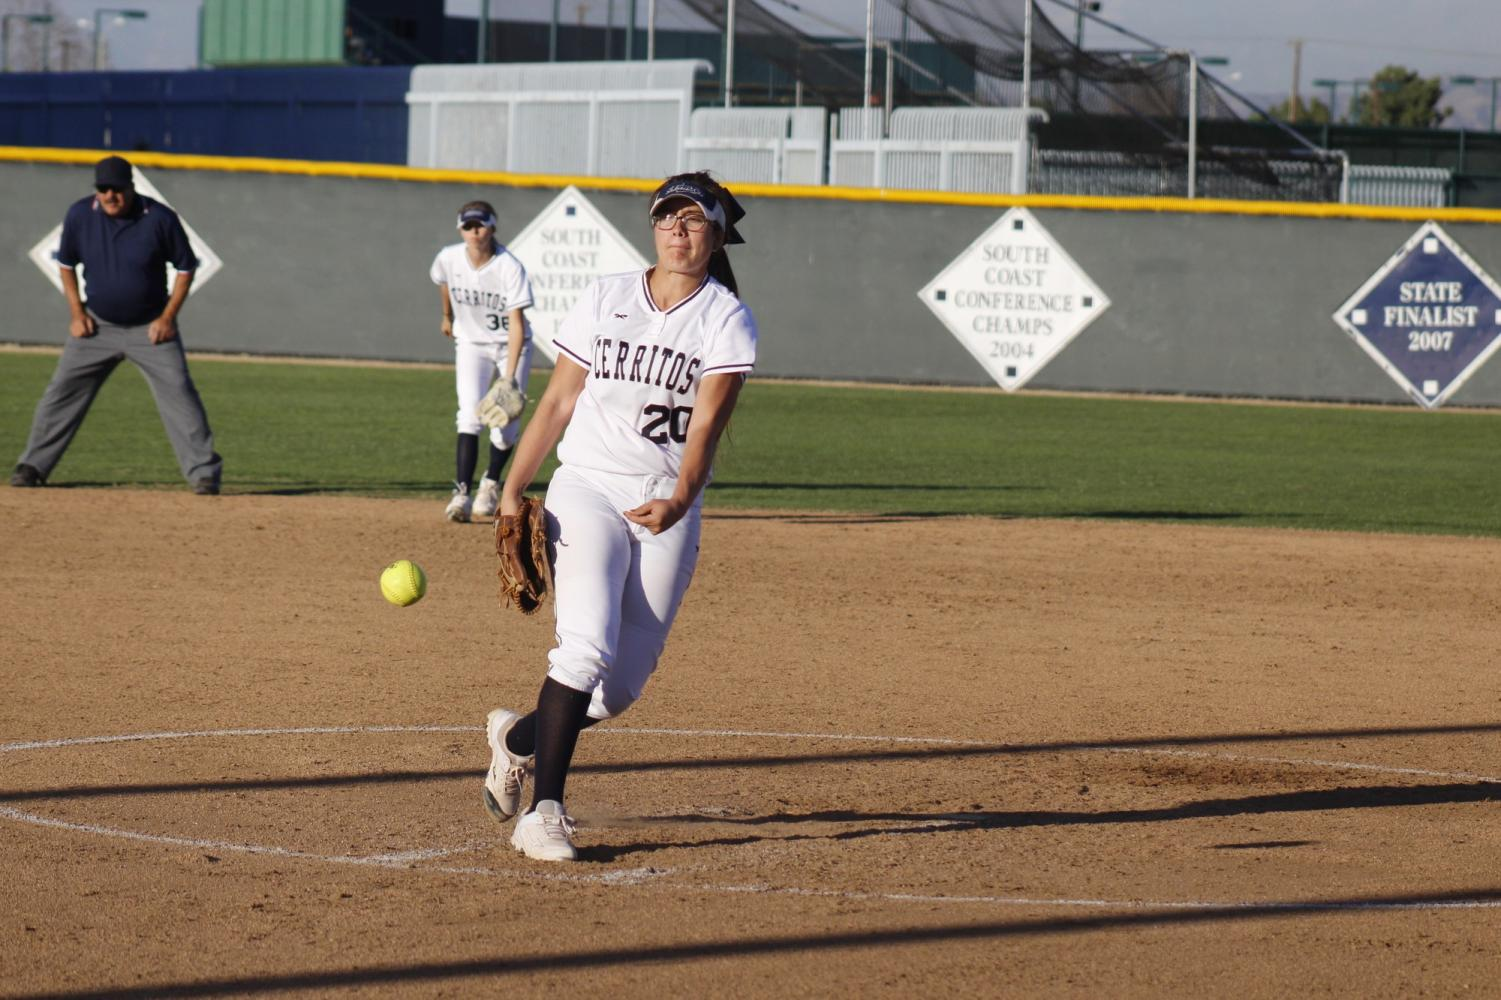 Freshman pitcher No. 20 Sierra Gerdts pitches the ball. She pitched for the remaining four innings and struck out two players.